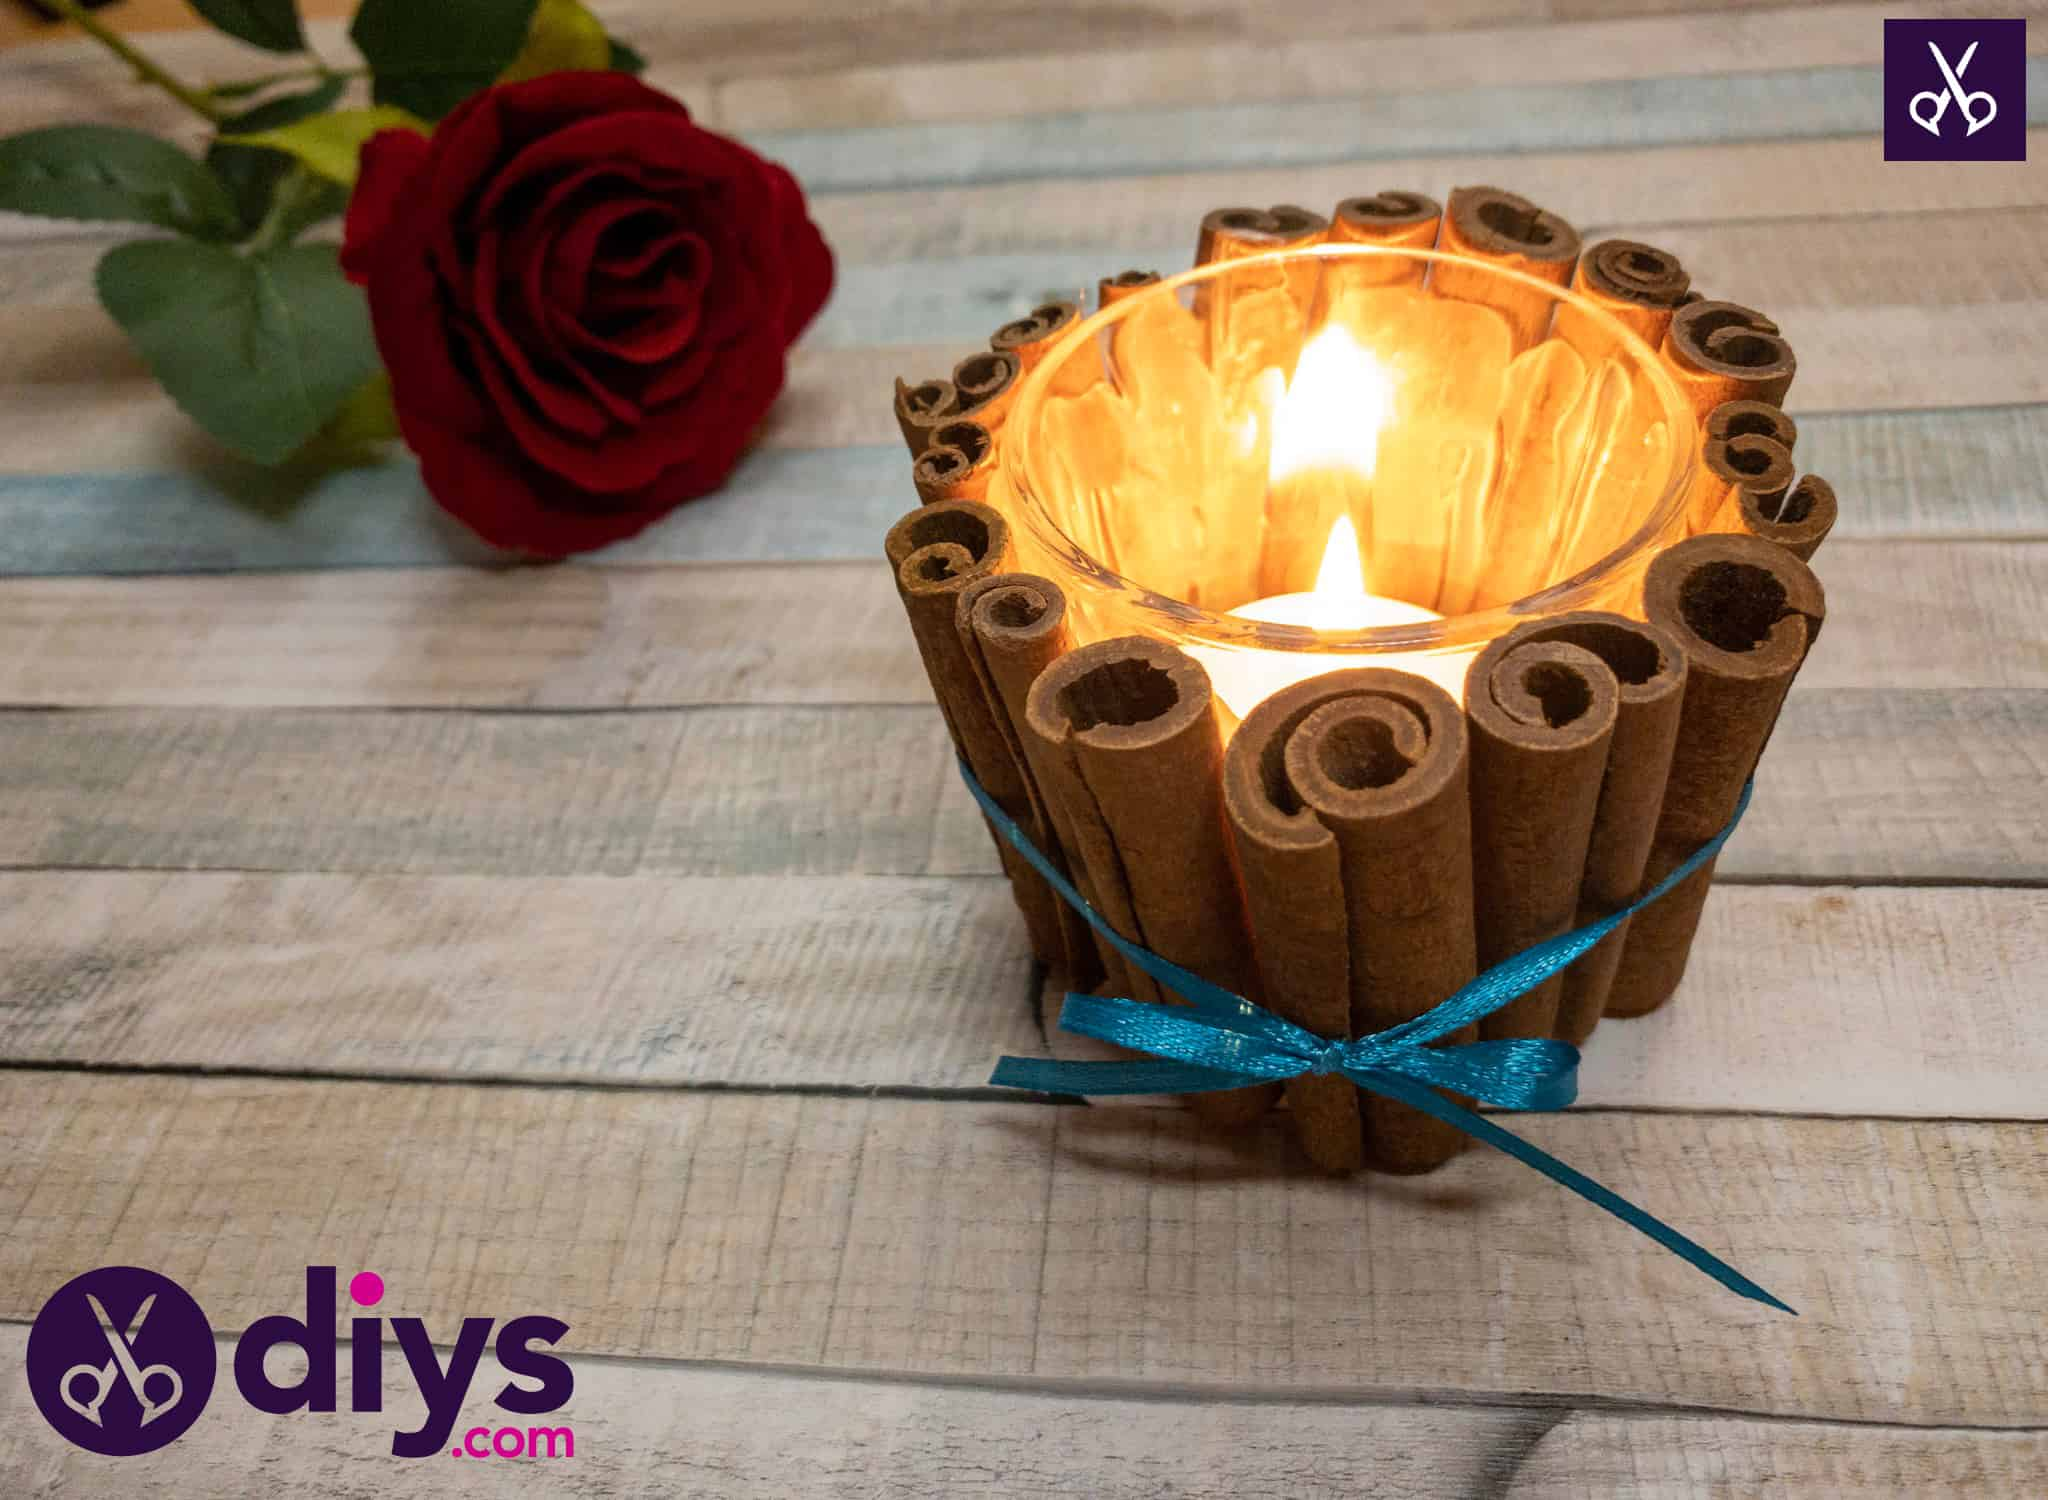 Decorate the christmas table with a cinnamon stick candle holder